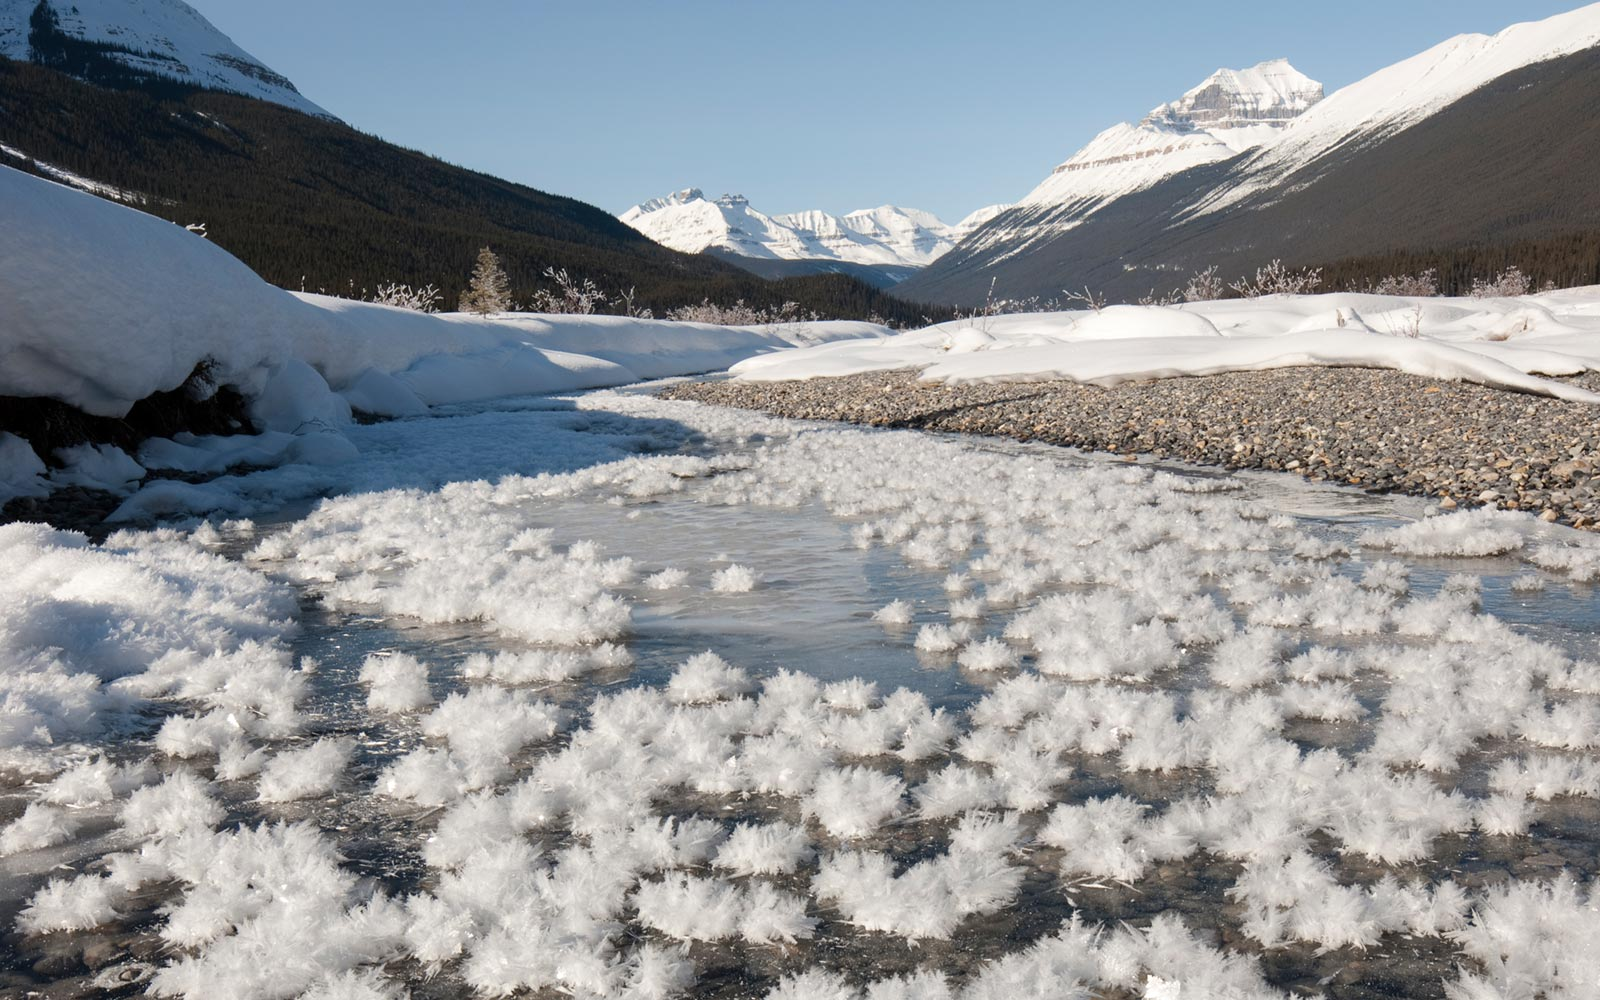 Frost Flowers, Graveyard flats, Canadian Rockies, Canada